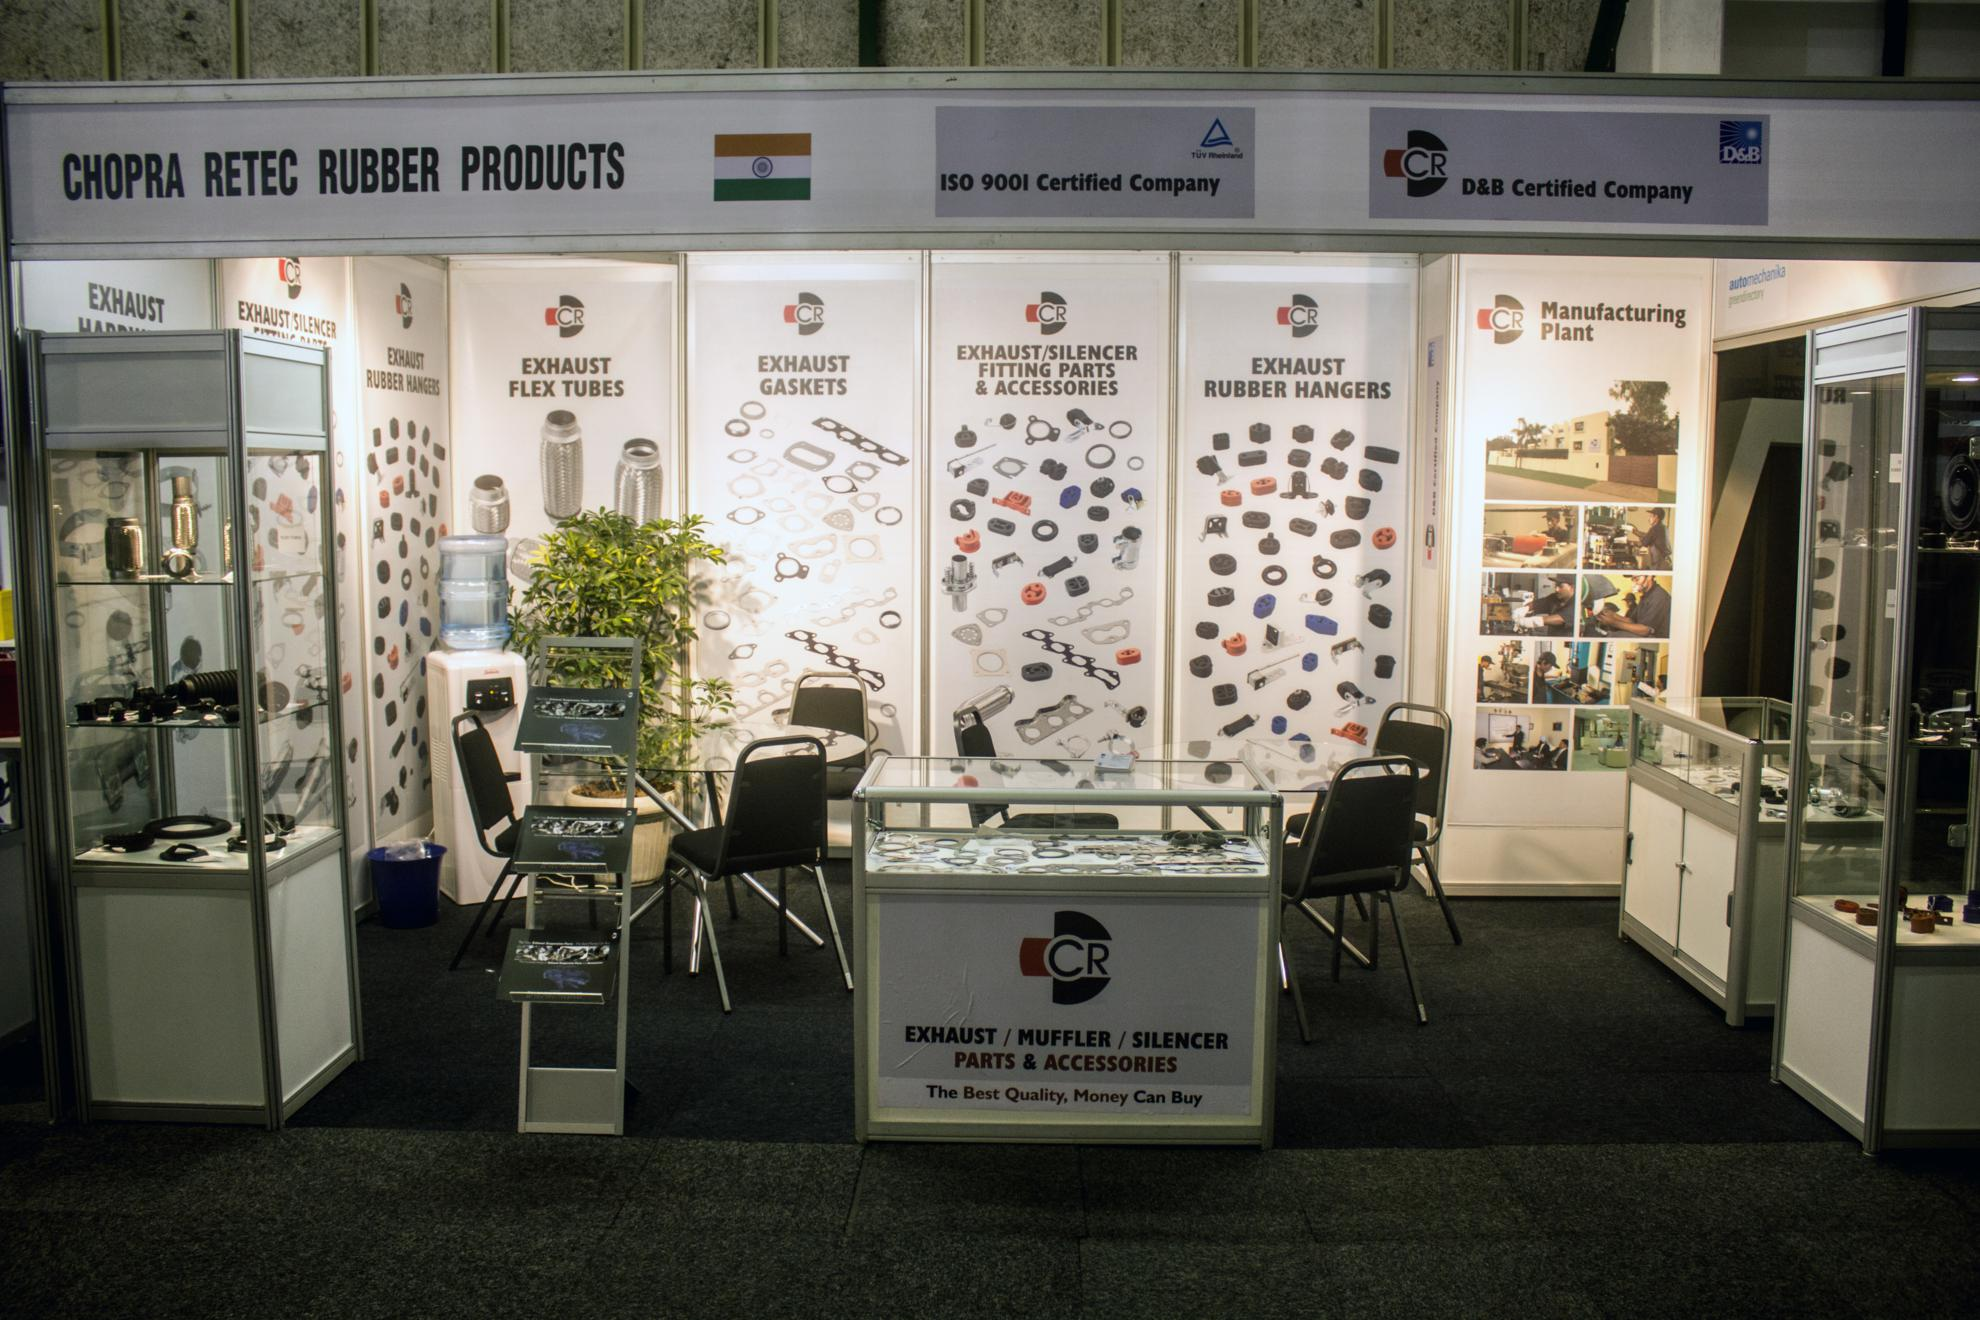 Automechanika-Chopra-Retec-Rubber-Products